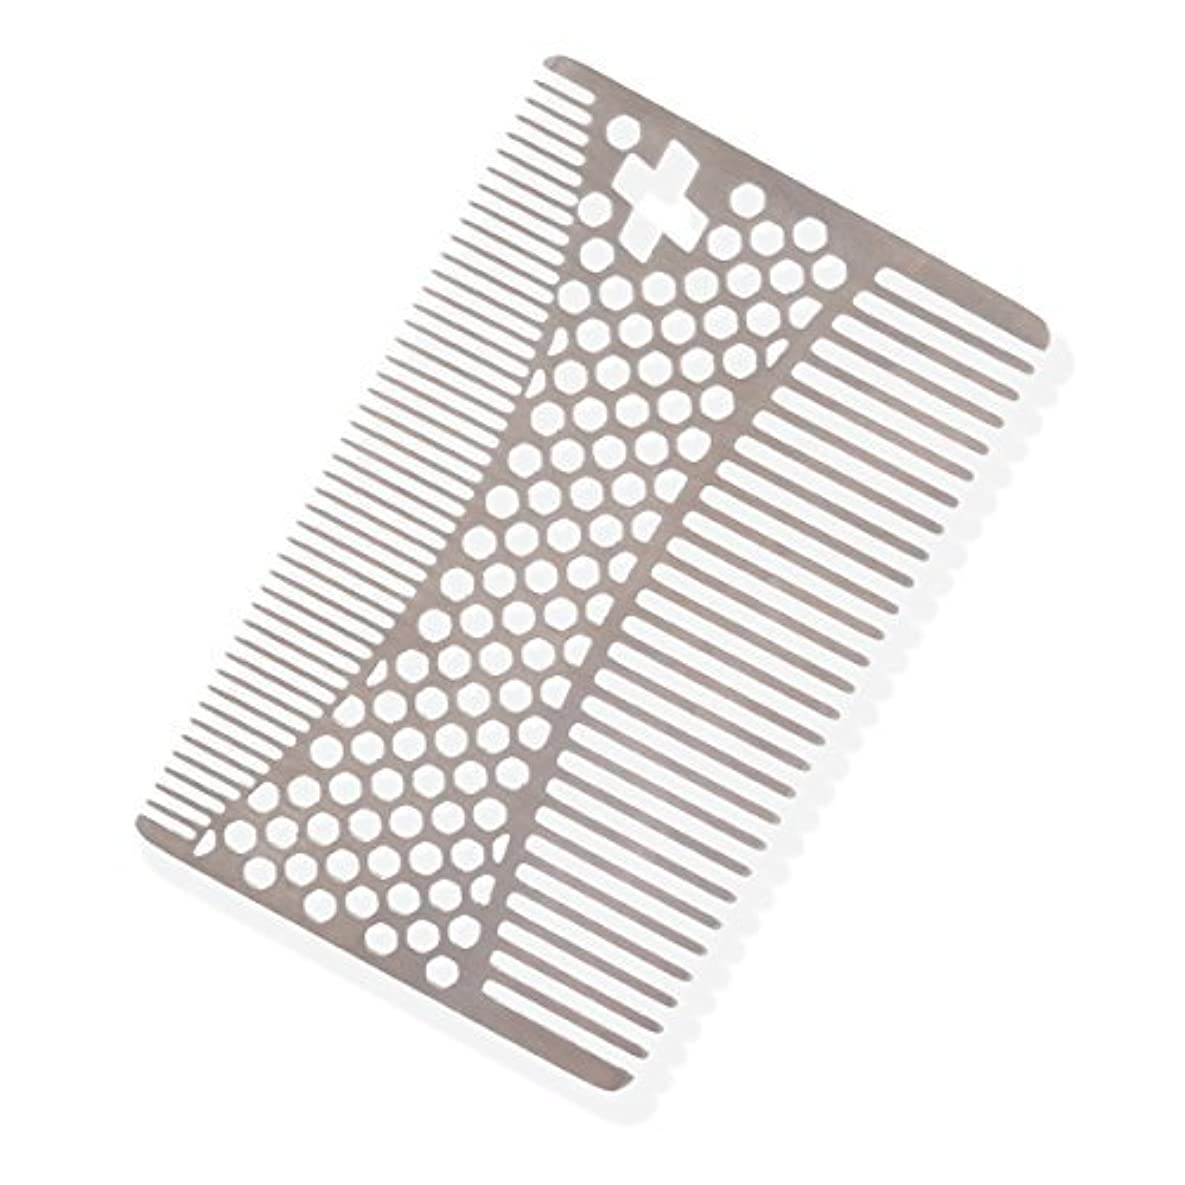 十分に農業の組立SHARPSWISS Credit Card Pocket Men Hair and Beard Comb Short - Stainless Steel [並行輸入品]